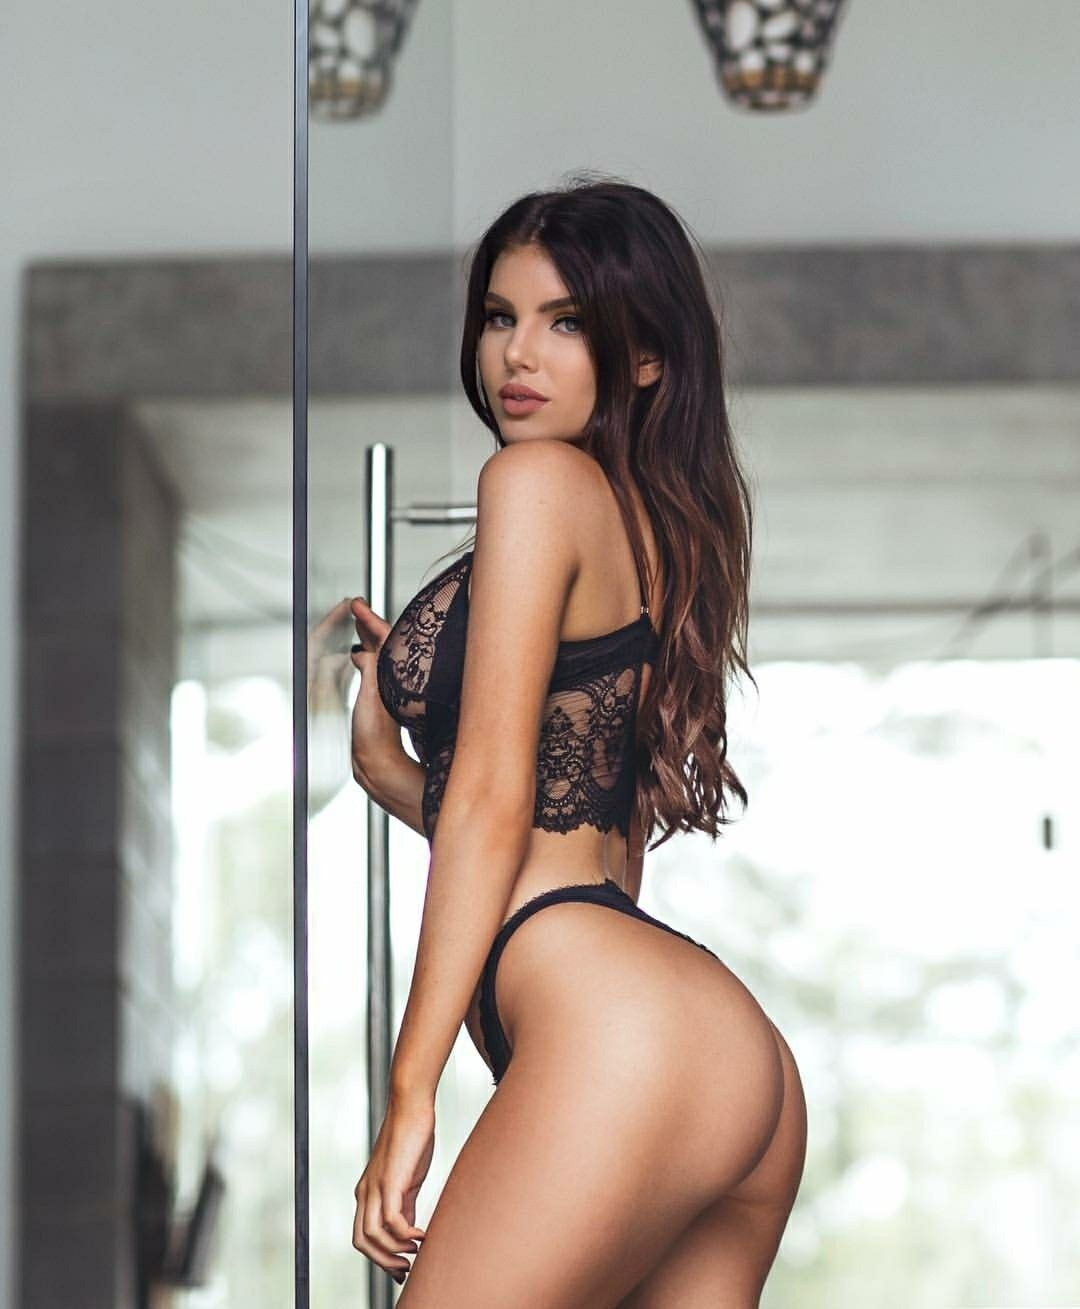 Cleavage Nicole Thorne nudes (72 images), Instagram